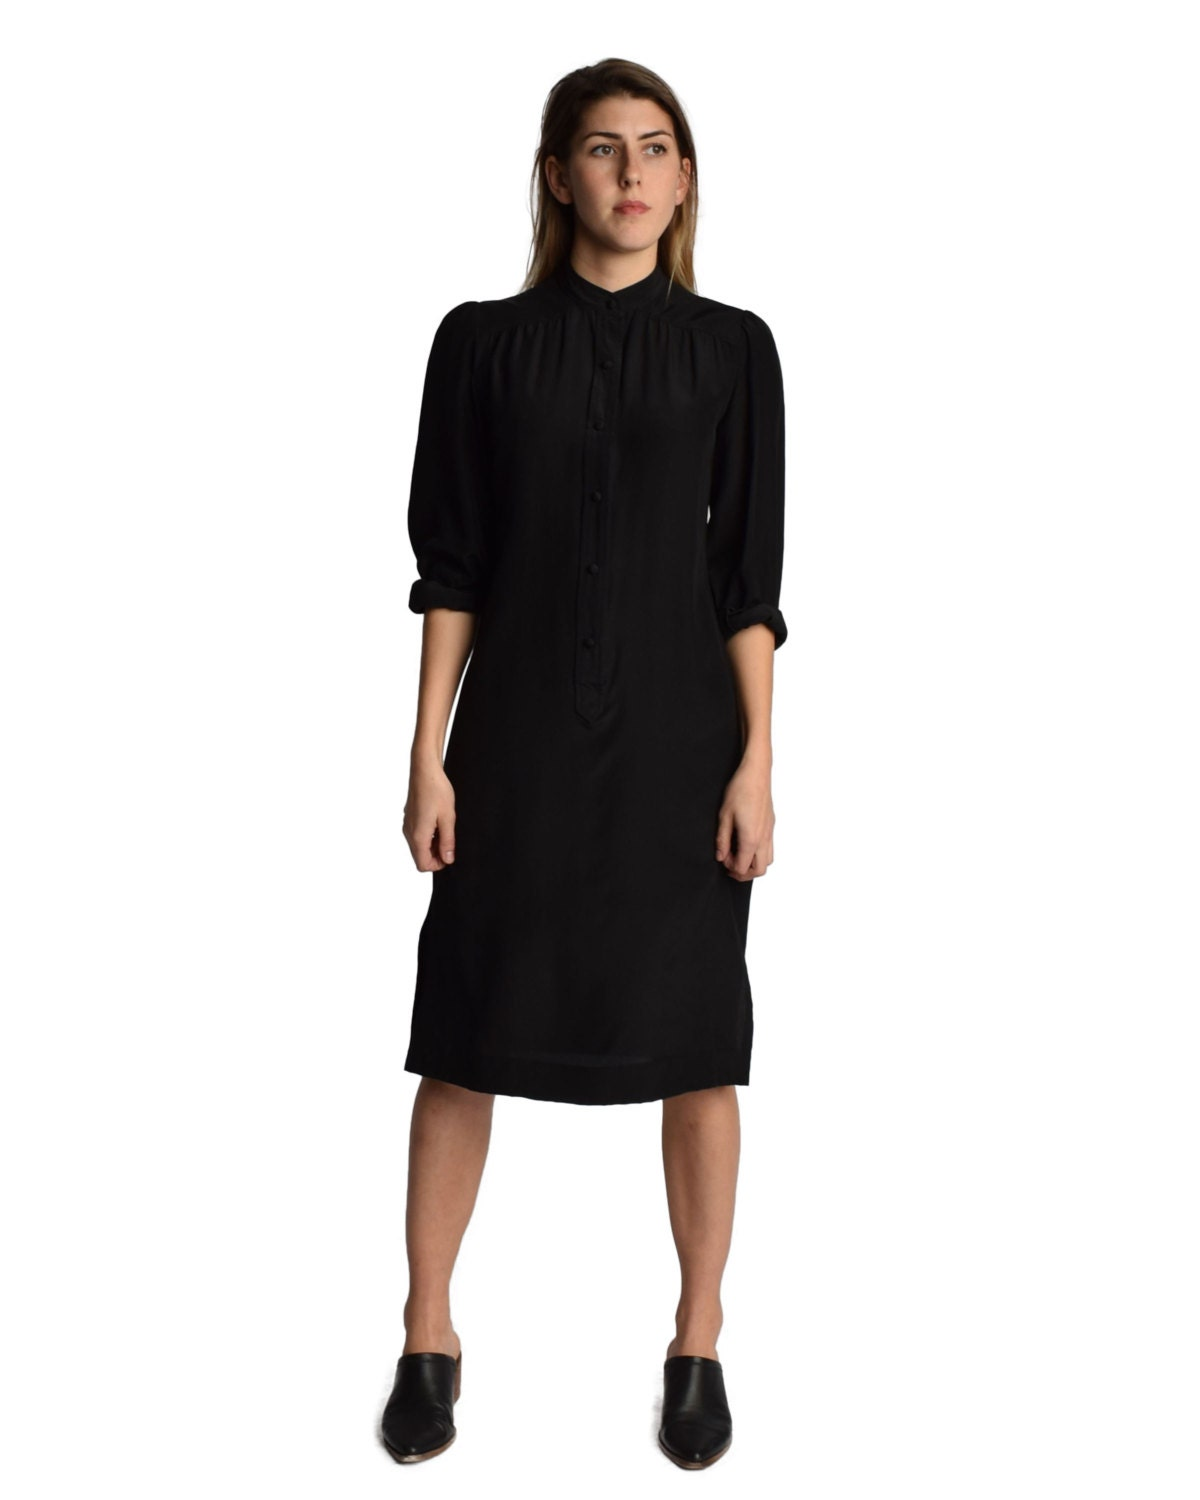 Shop the Brooks Brothers collection of women's blouses, tunics, shirts, tops, and dress shirts. Legendary quality and customer service are a click away. Crafted from high-quality materials like cotton, silk and wool, our blouses and tunic tops for women are comfortable and stylish. Choose from non-iron shirts in cuffed and non-cuffed styles.